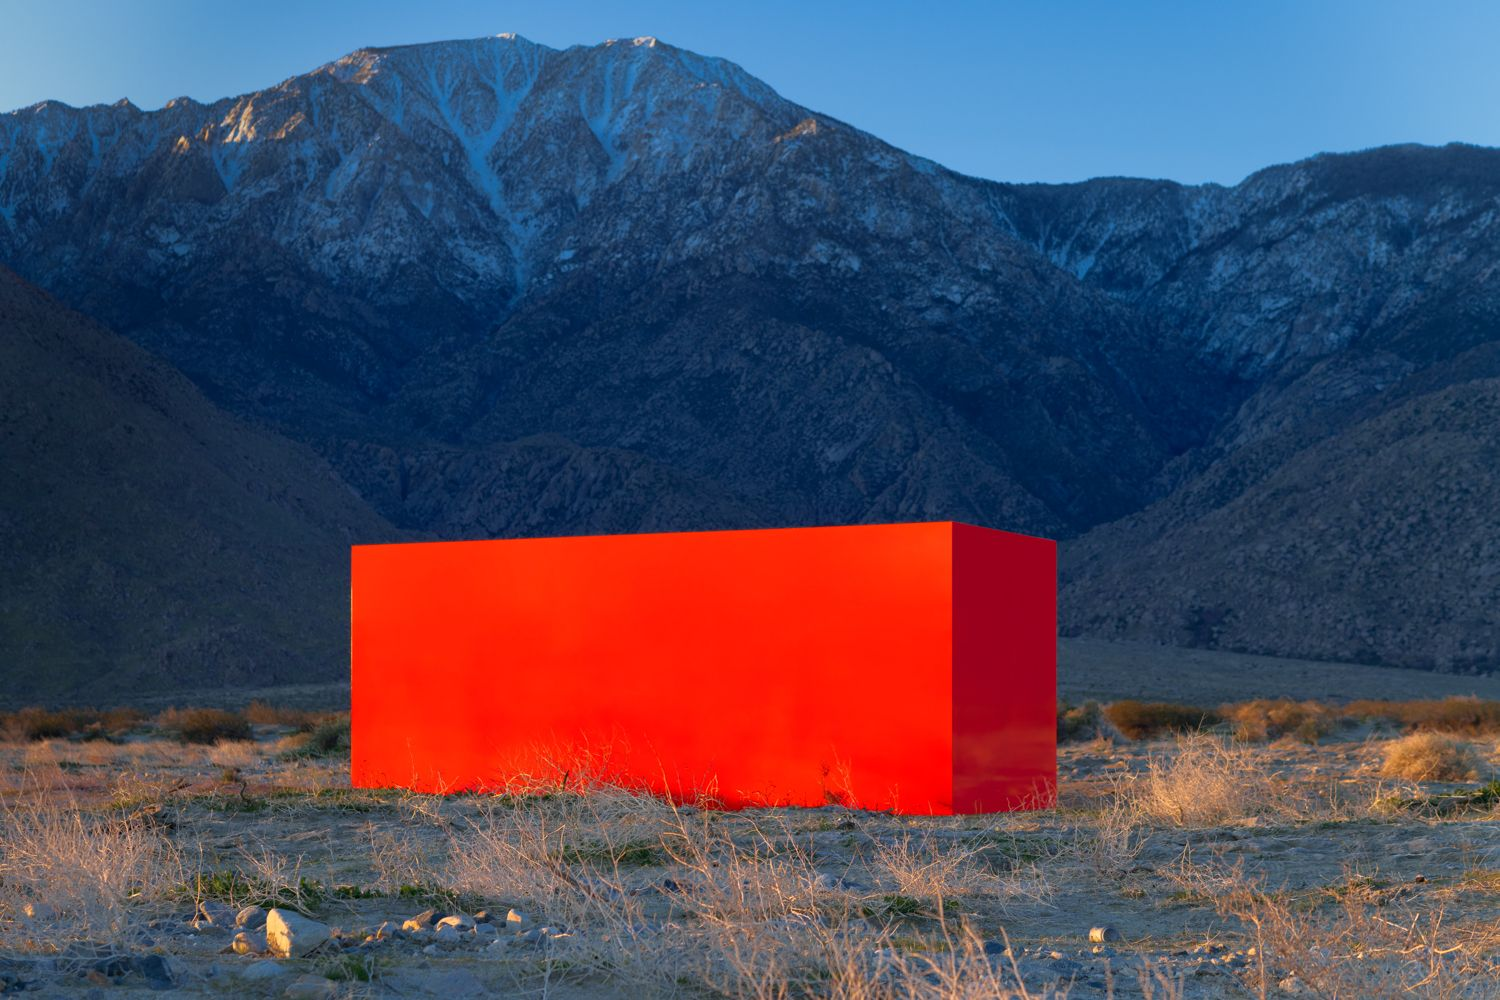 Installation view, Sterling Ruby, Desert X, Coachella Valley, California, 2019